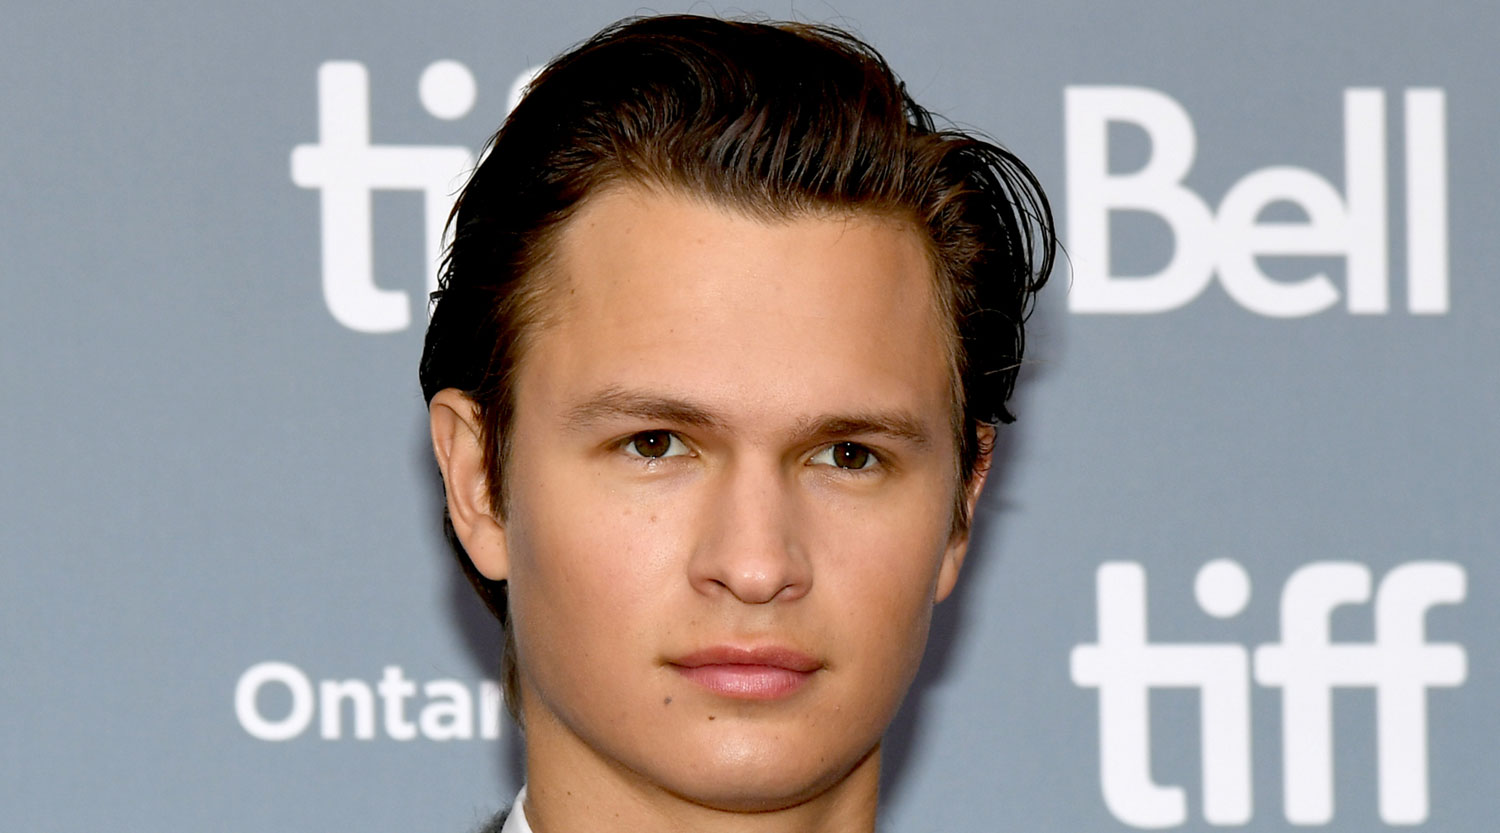 Ansel Elgort's View on Love is a Non-Traditional One